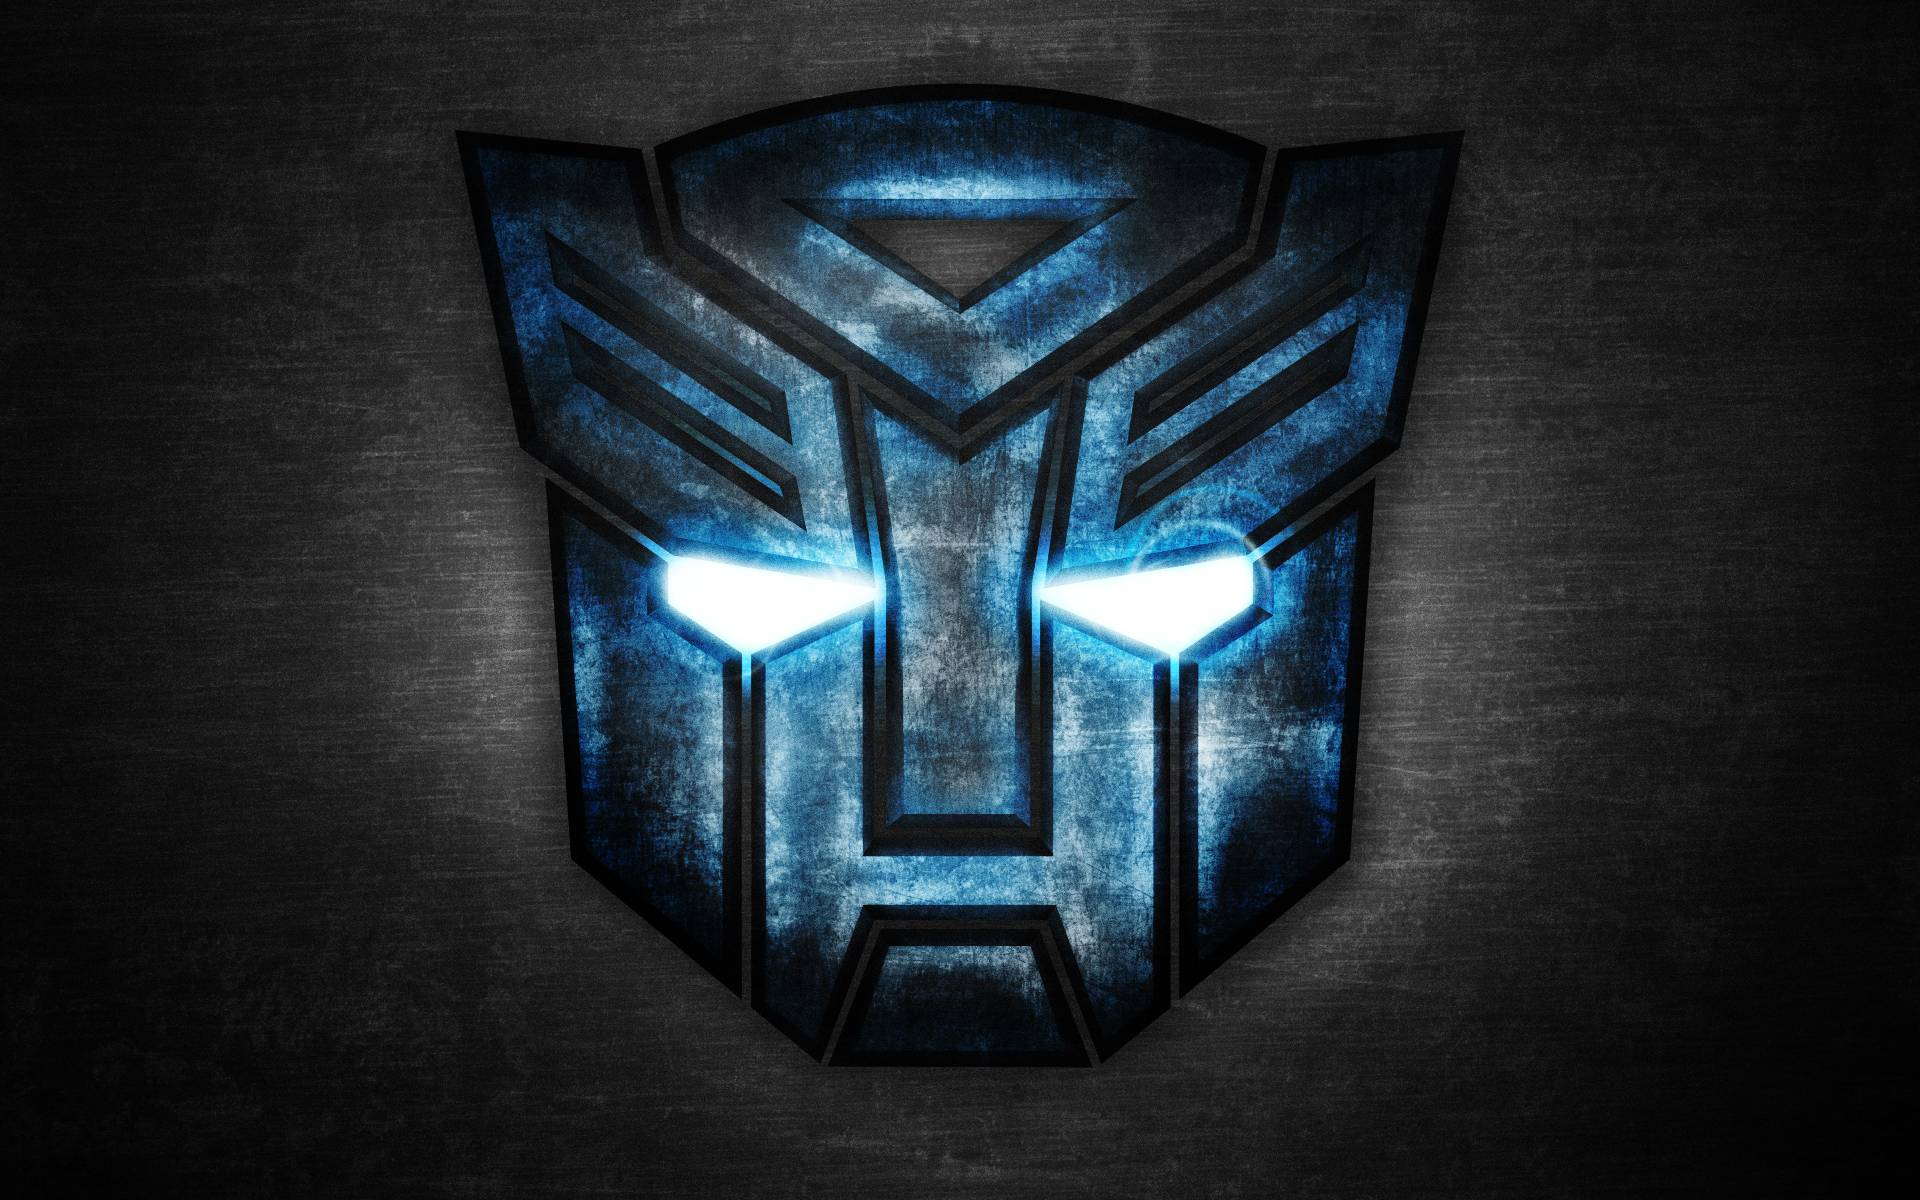 transformers wallpapers full hd wallpaper search page 4